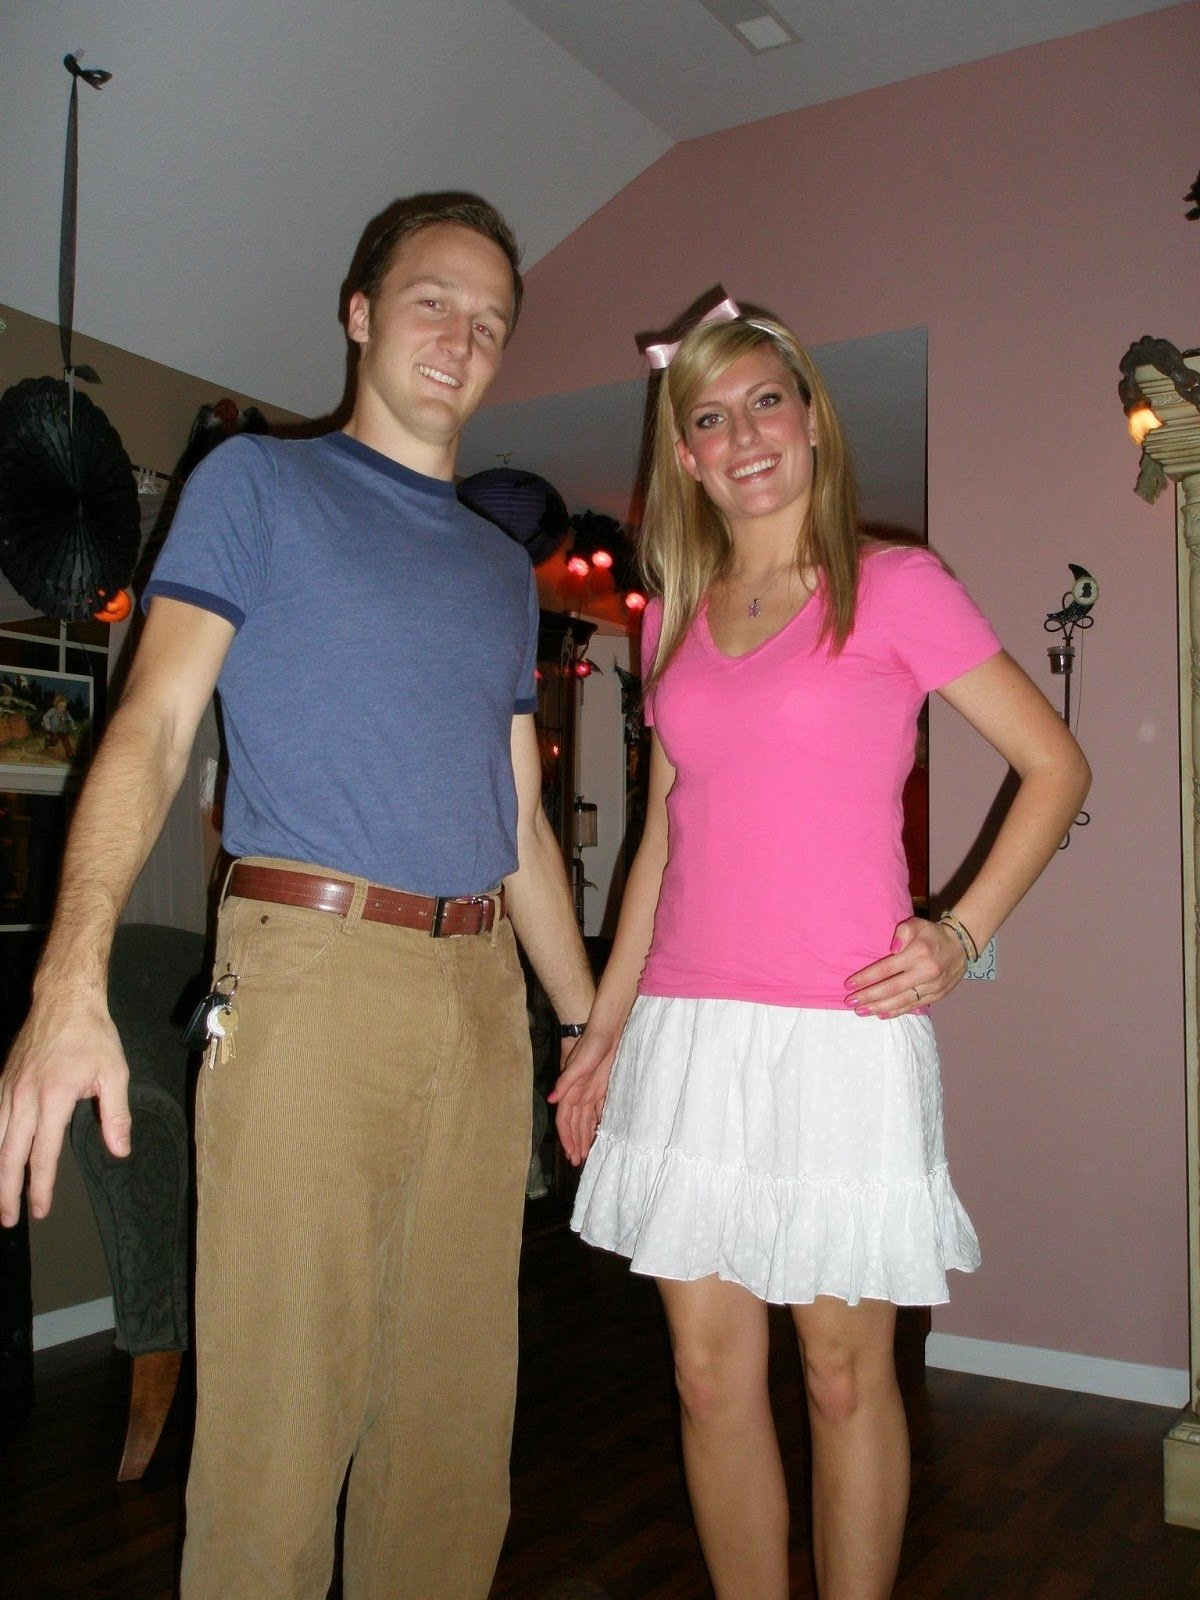 57 couples diy costumes, best 25 halloween couples ideas on